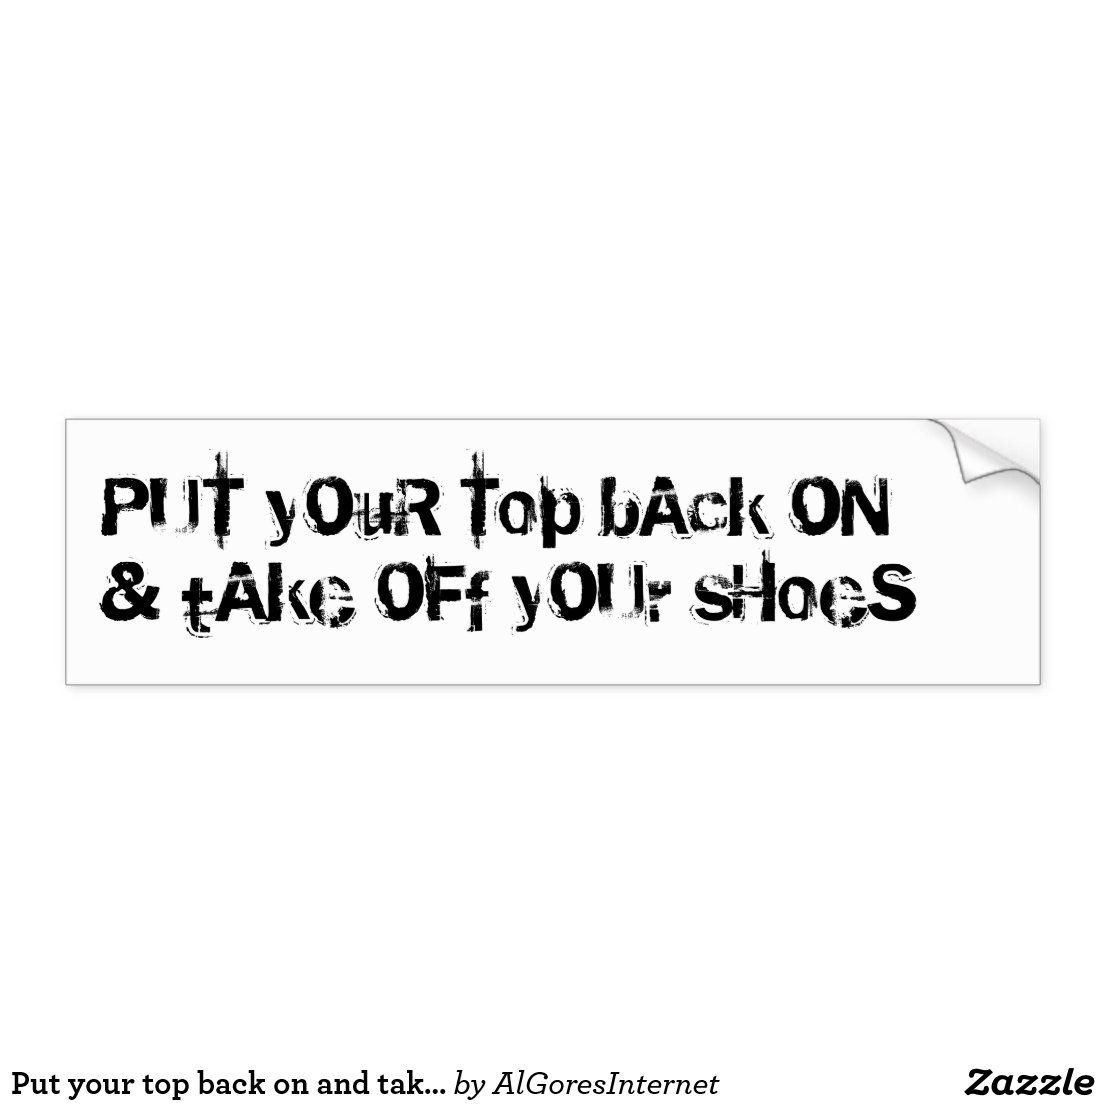 Put Your Top Back On And Take Off Your Shoes Bumper Sticker Bumper Stickers Take Off Your Shoes Bumpers [ 1106 x 1106 Pixel ]